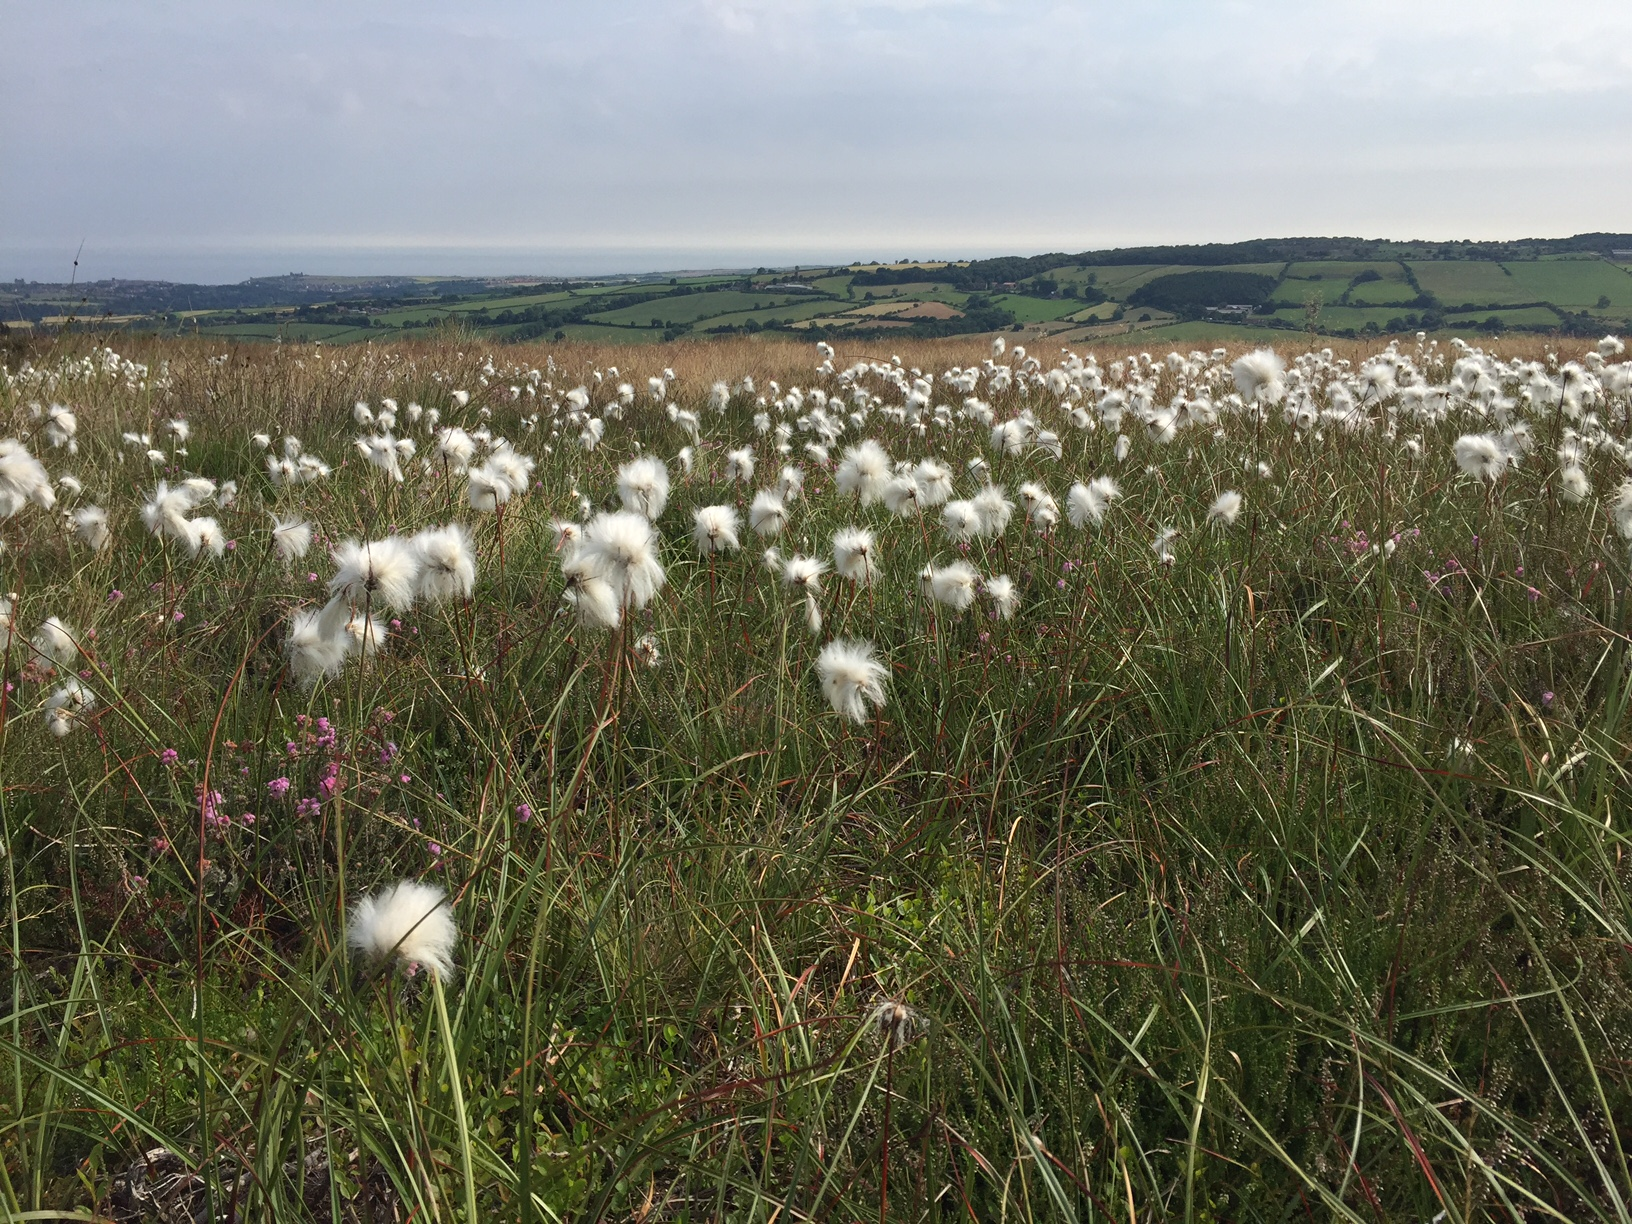 Wild cotton plants growing on the moors. Pastures in the background.